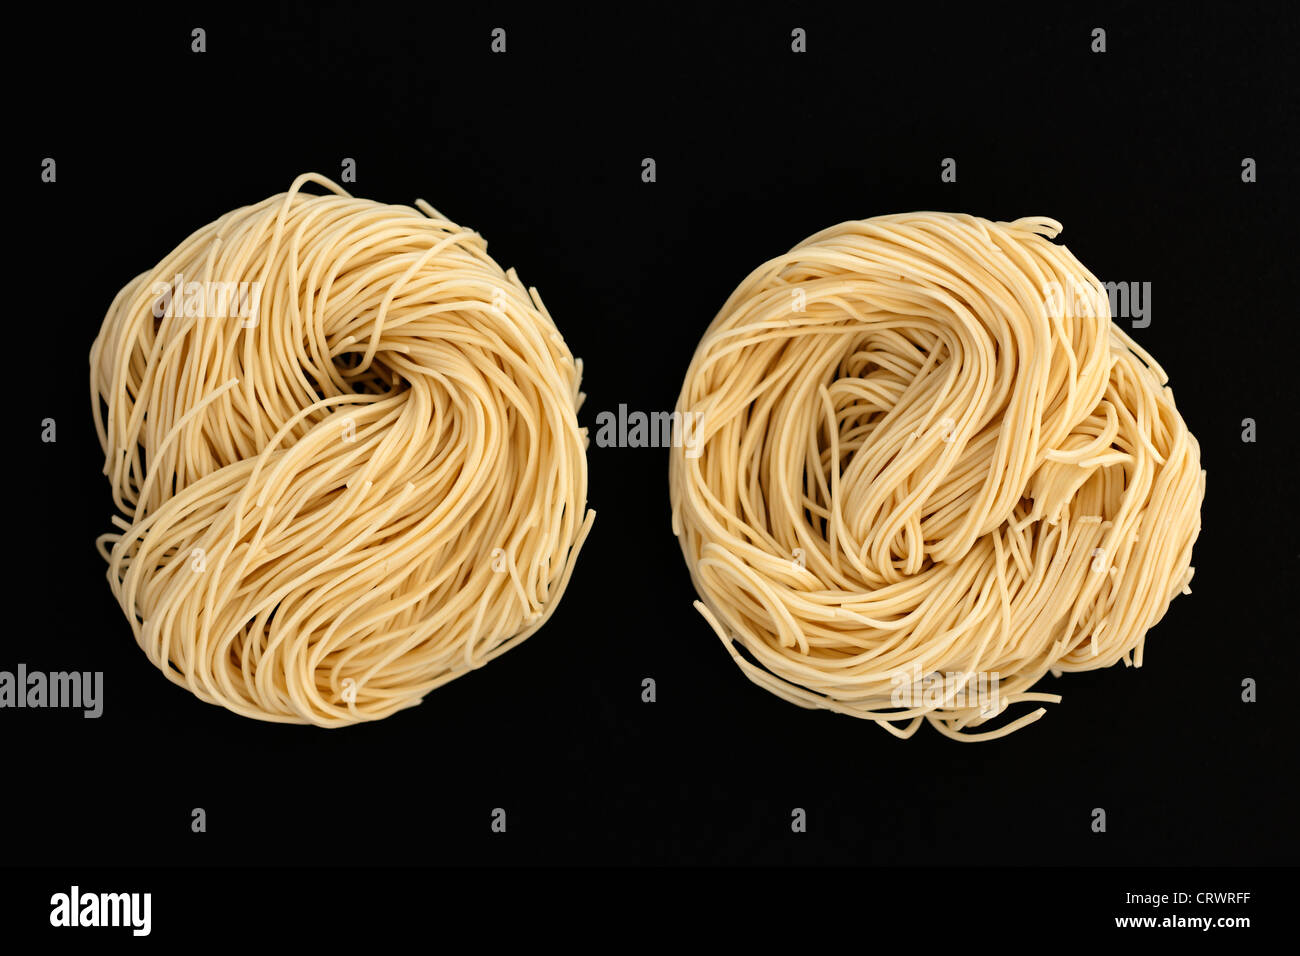 Two nests of fine egg noodles - Stock Image